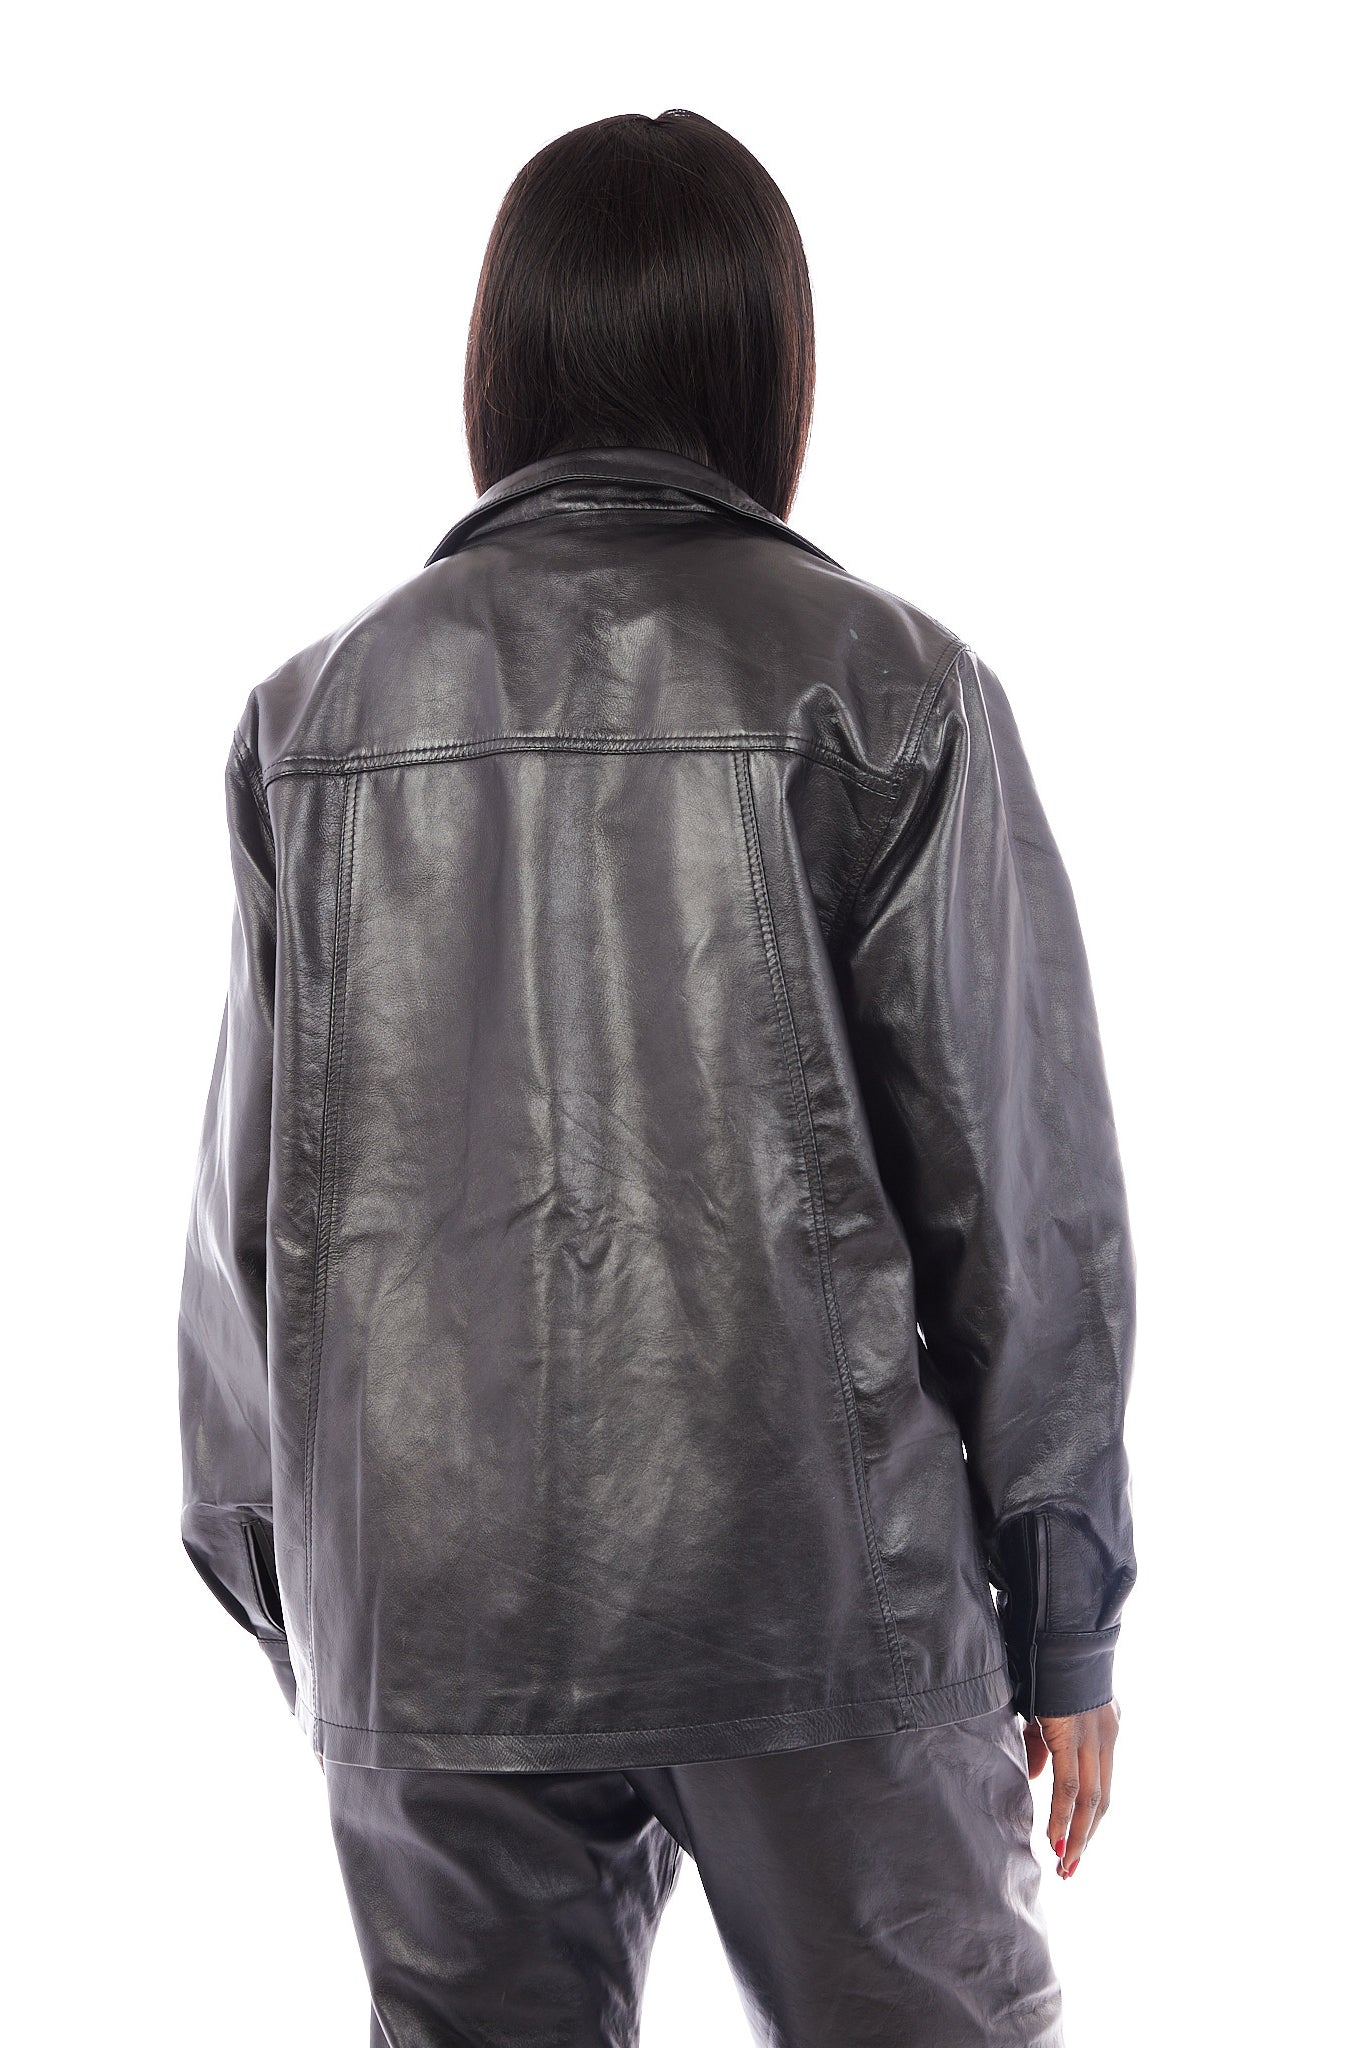 Claremont Leather Top